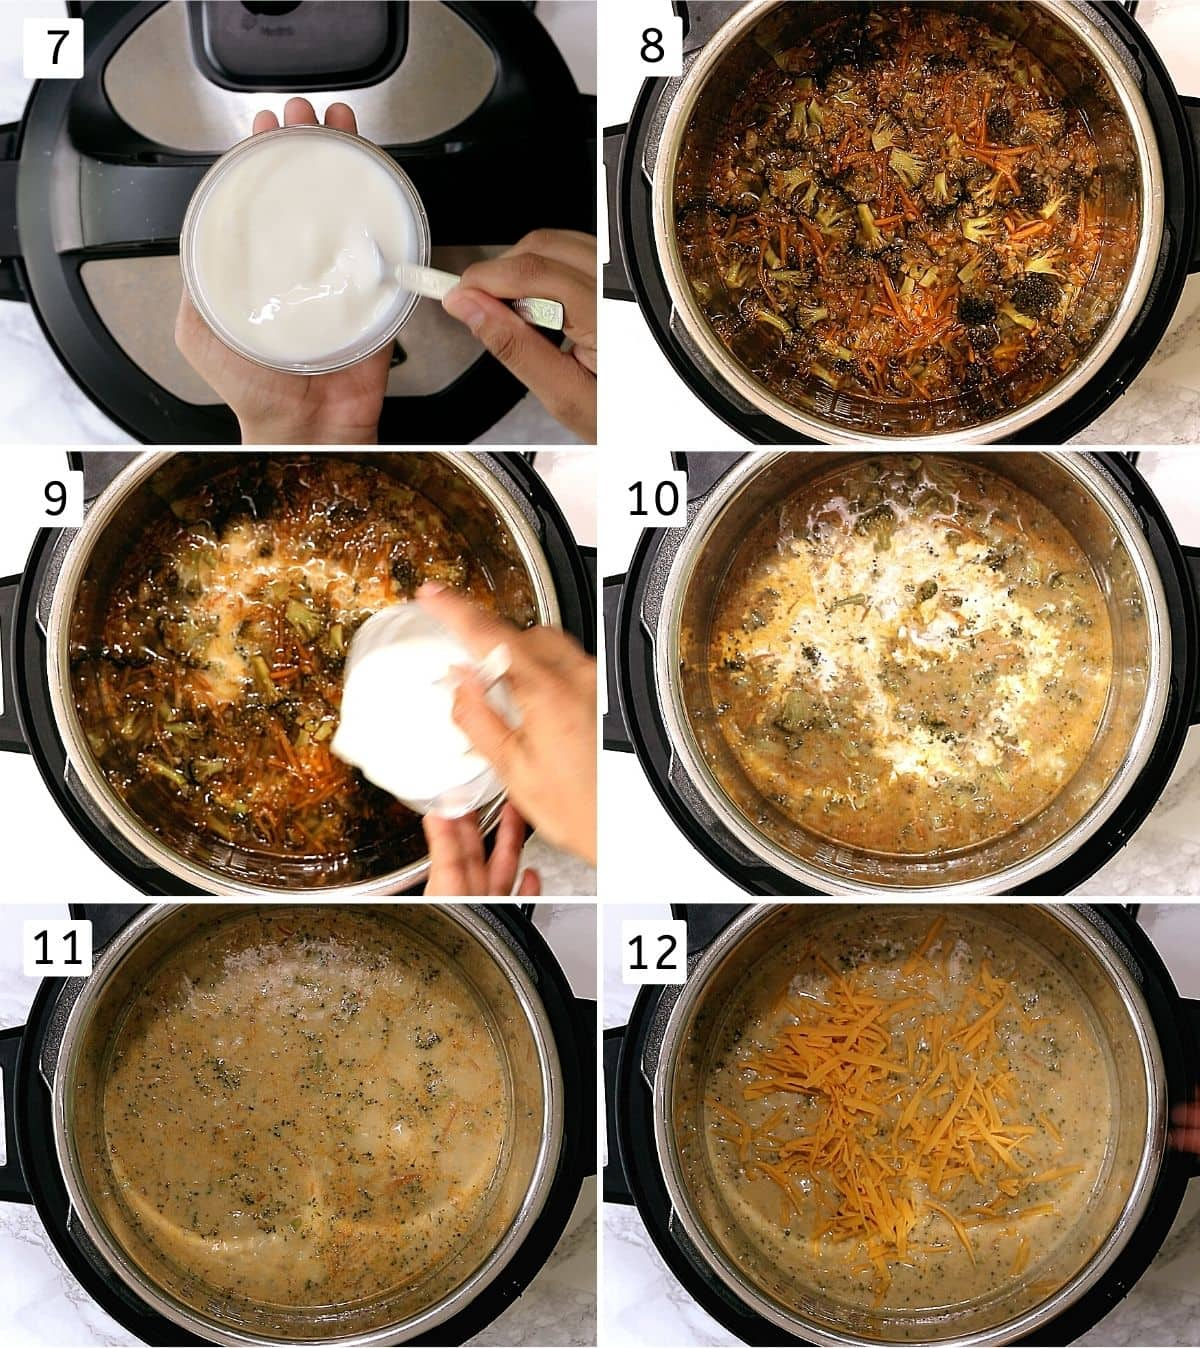 Collage of 6 steps showing making slurry, cooked soup mixture, adding slurry, adding cream, simmering, adding cheese.